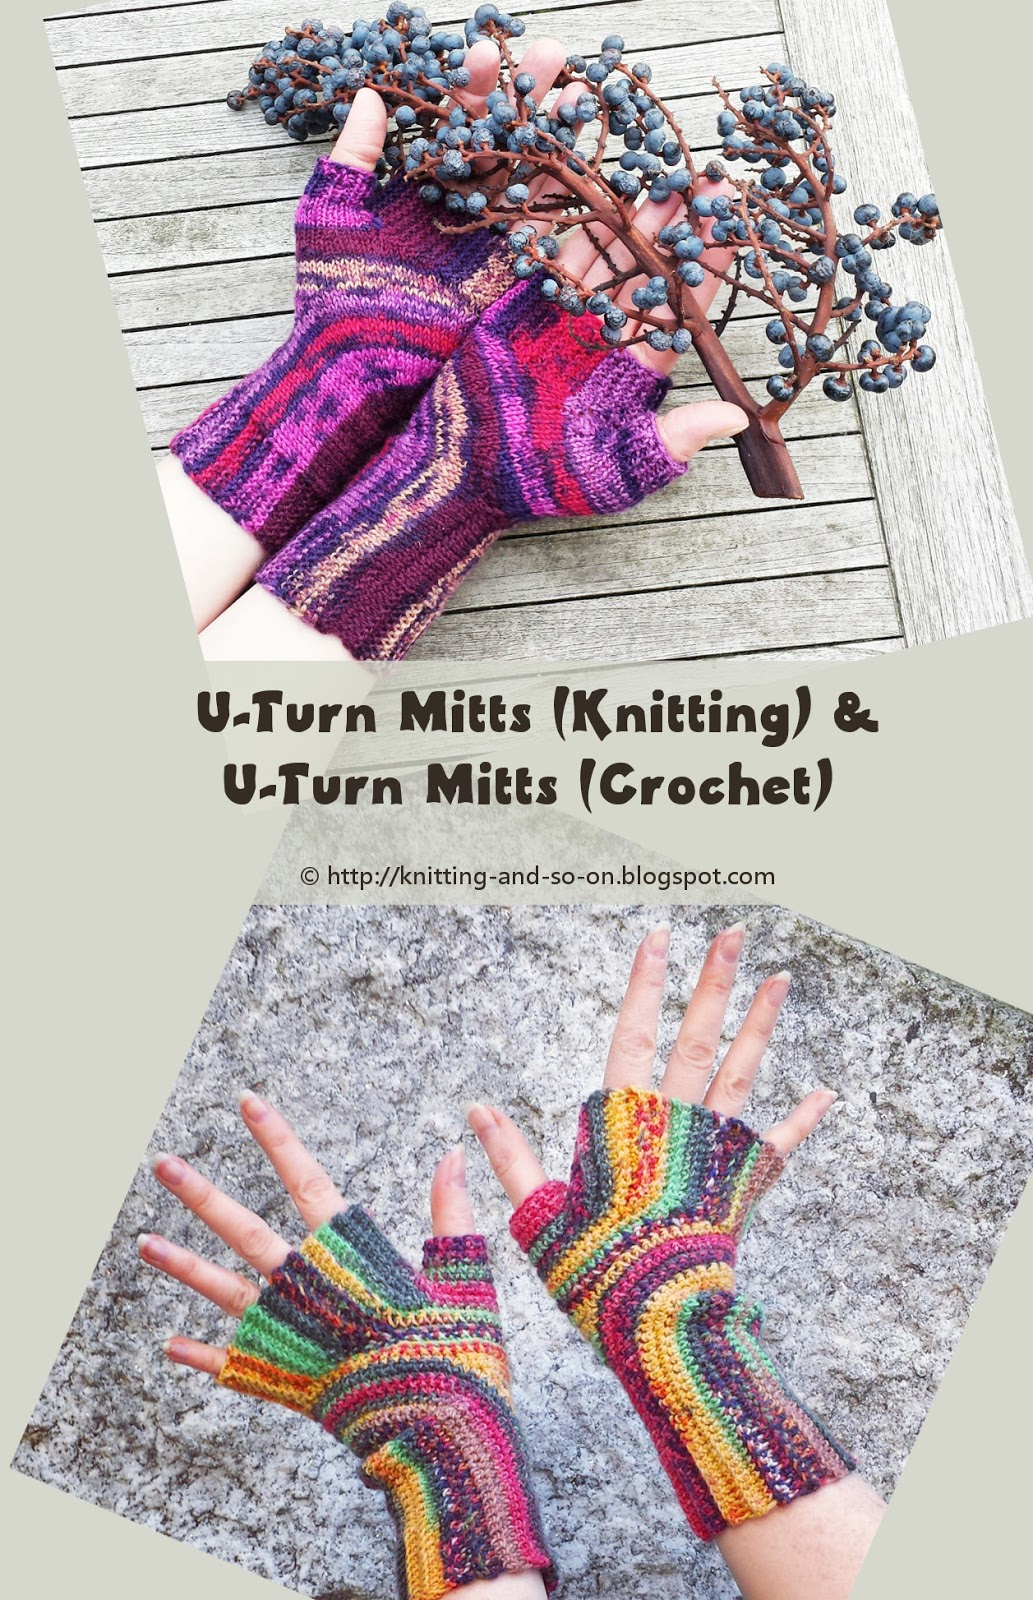 Knitting And So On Patterns With A Knitting And Crochet Version